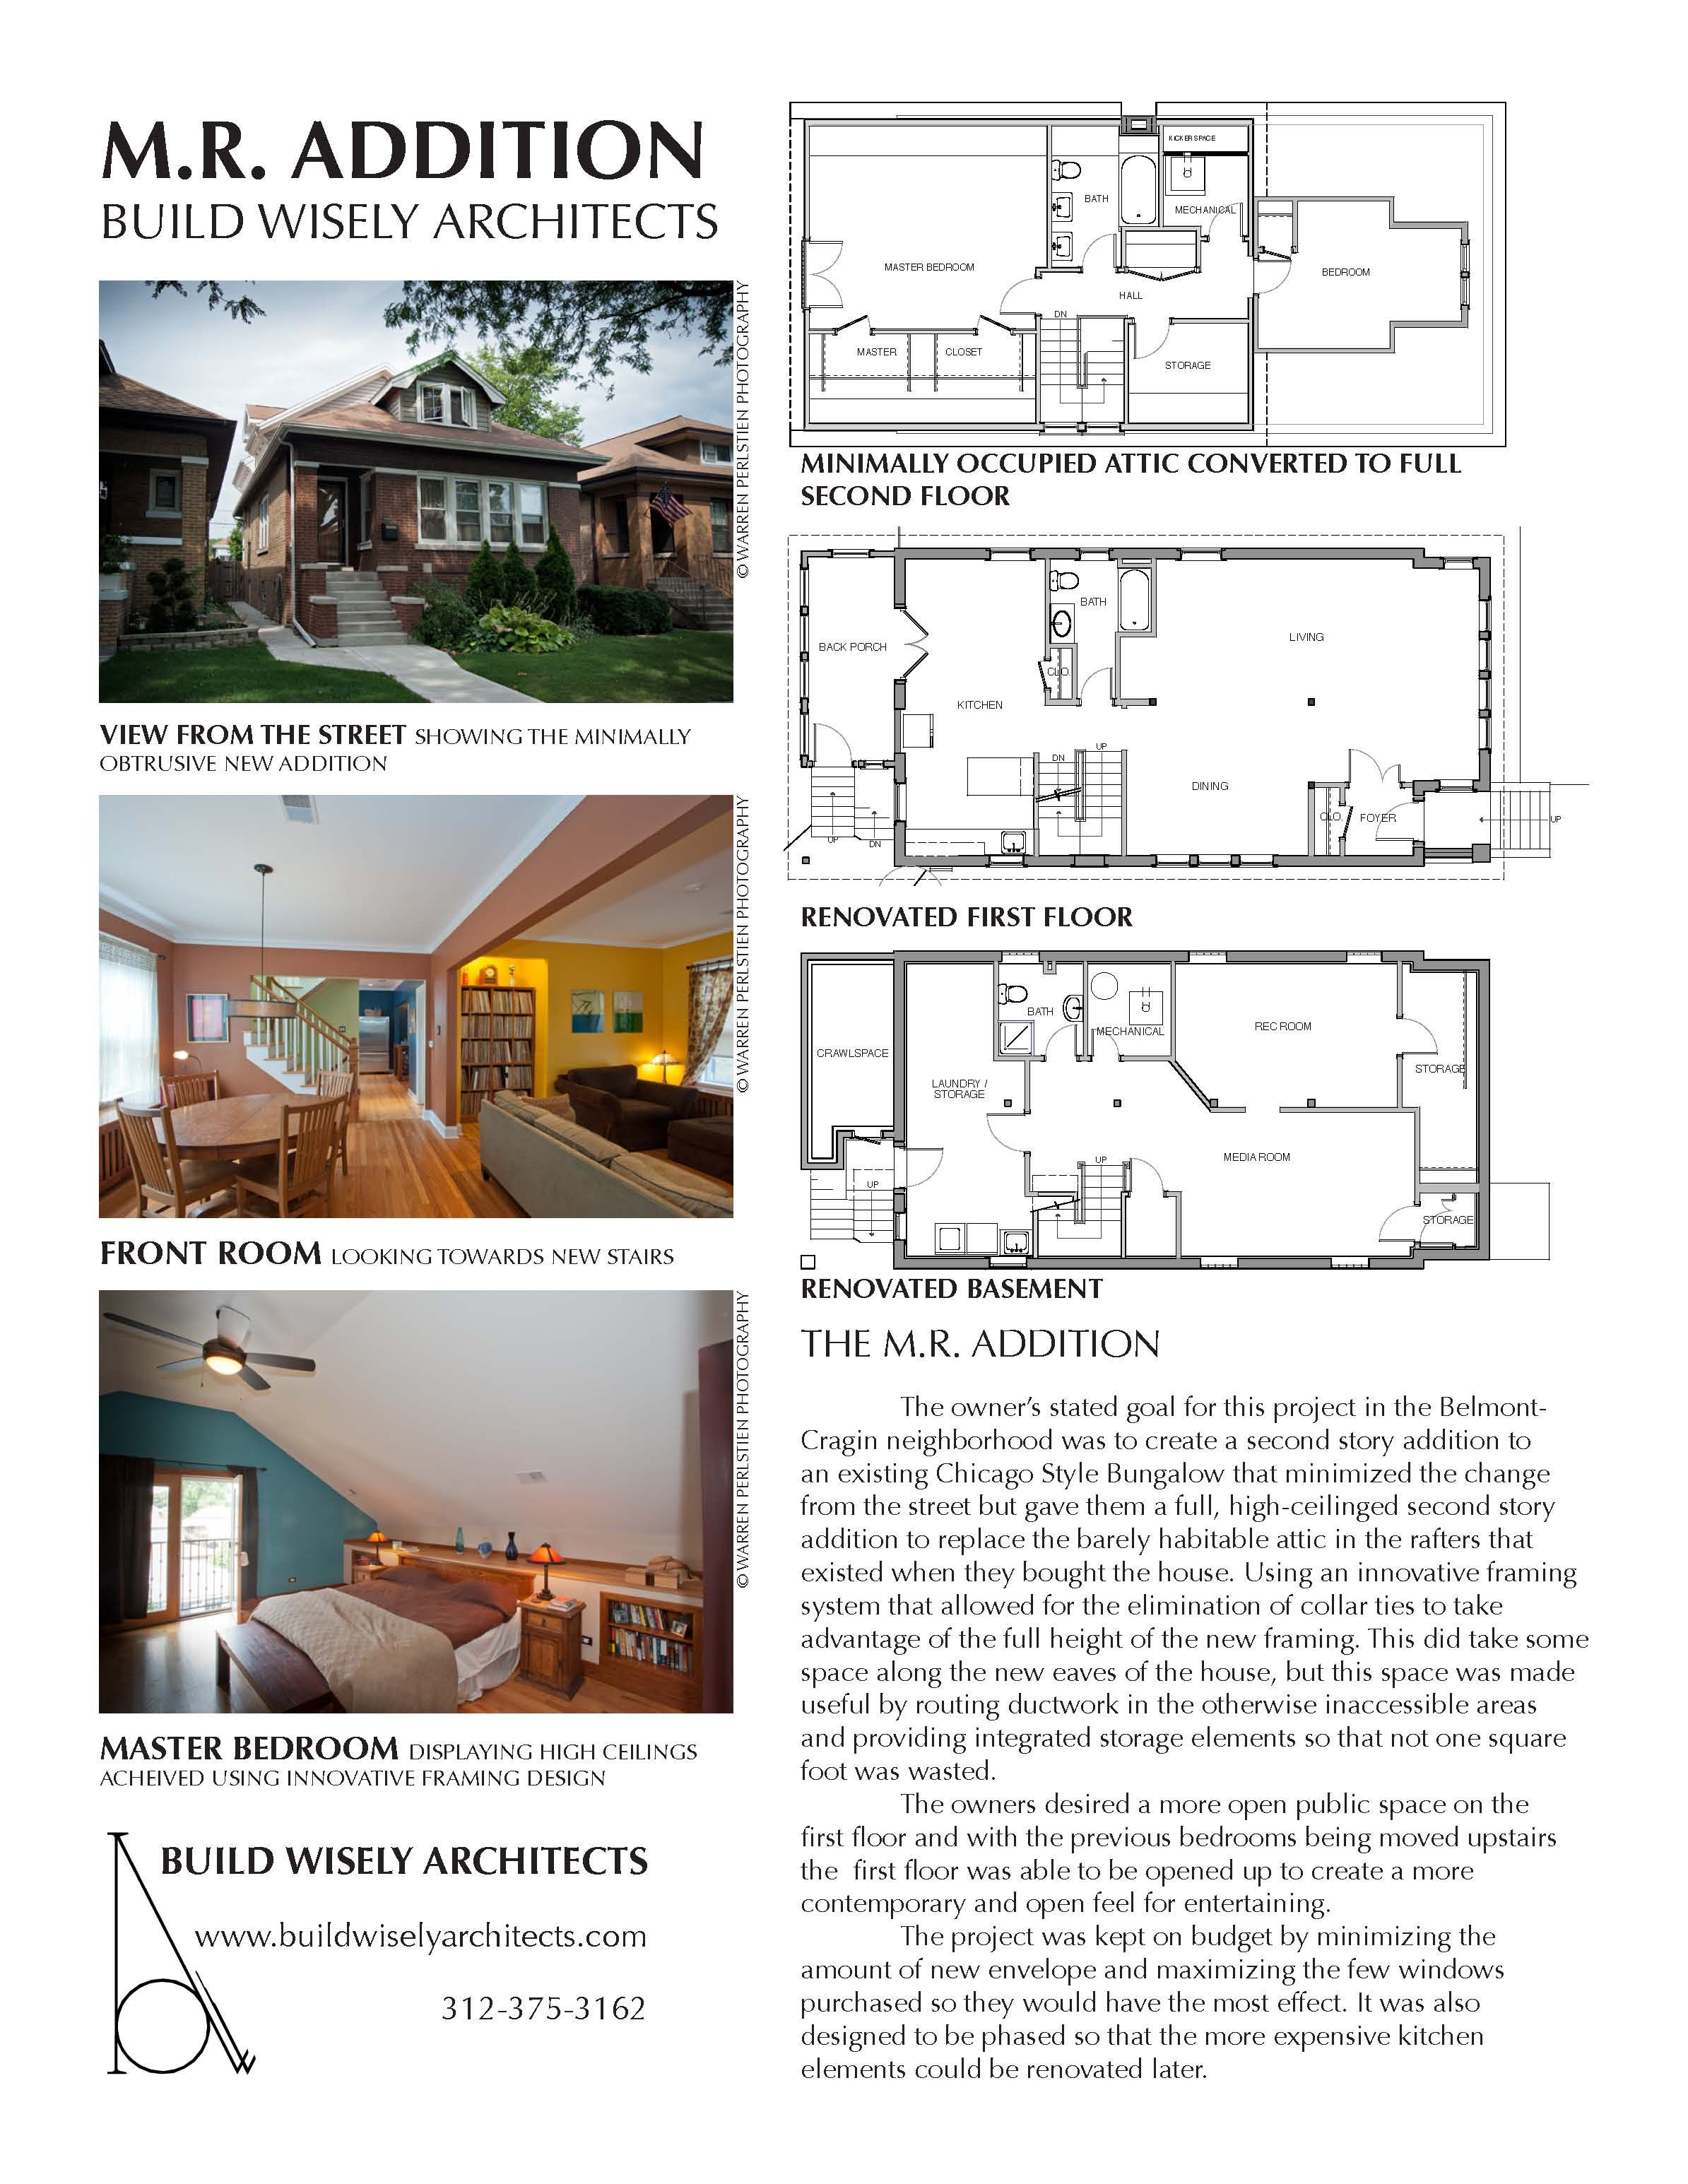 The Addition Build Wisely Architects Owner Stated Goal For This Project